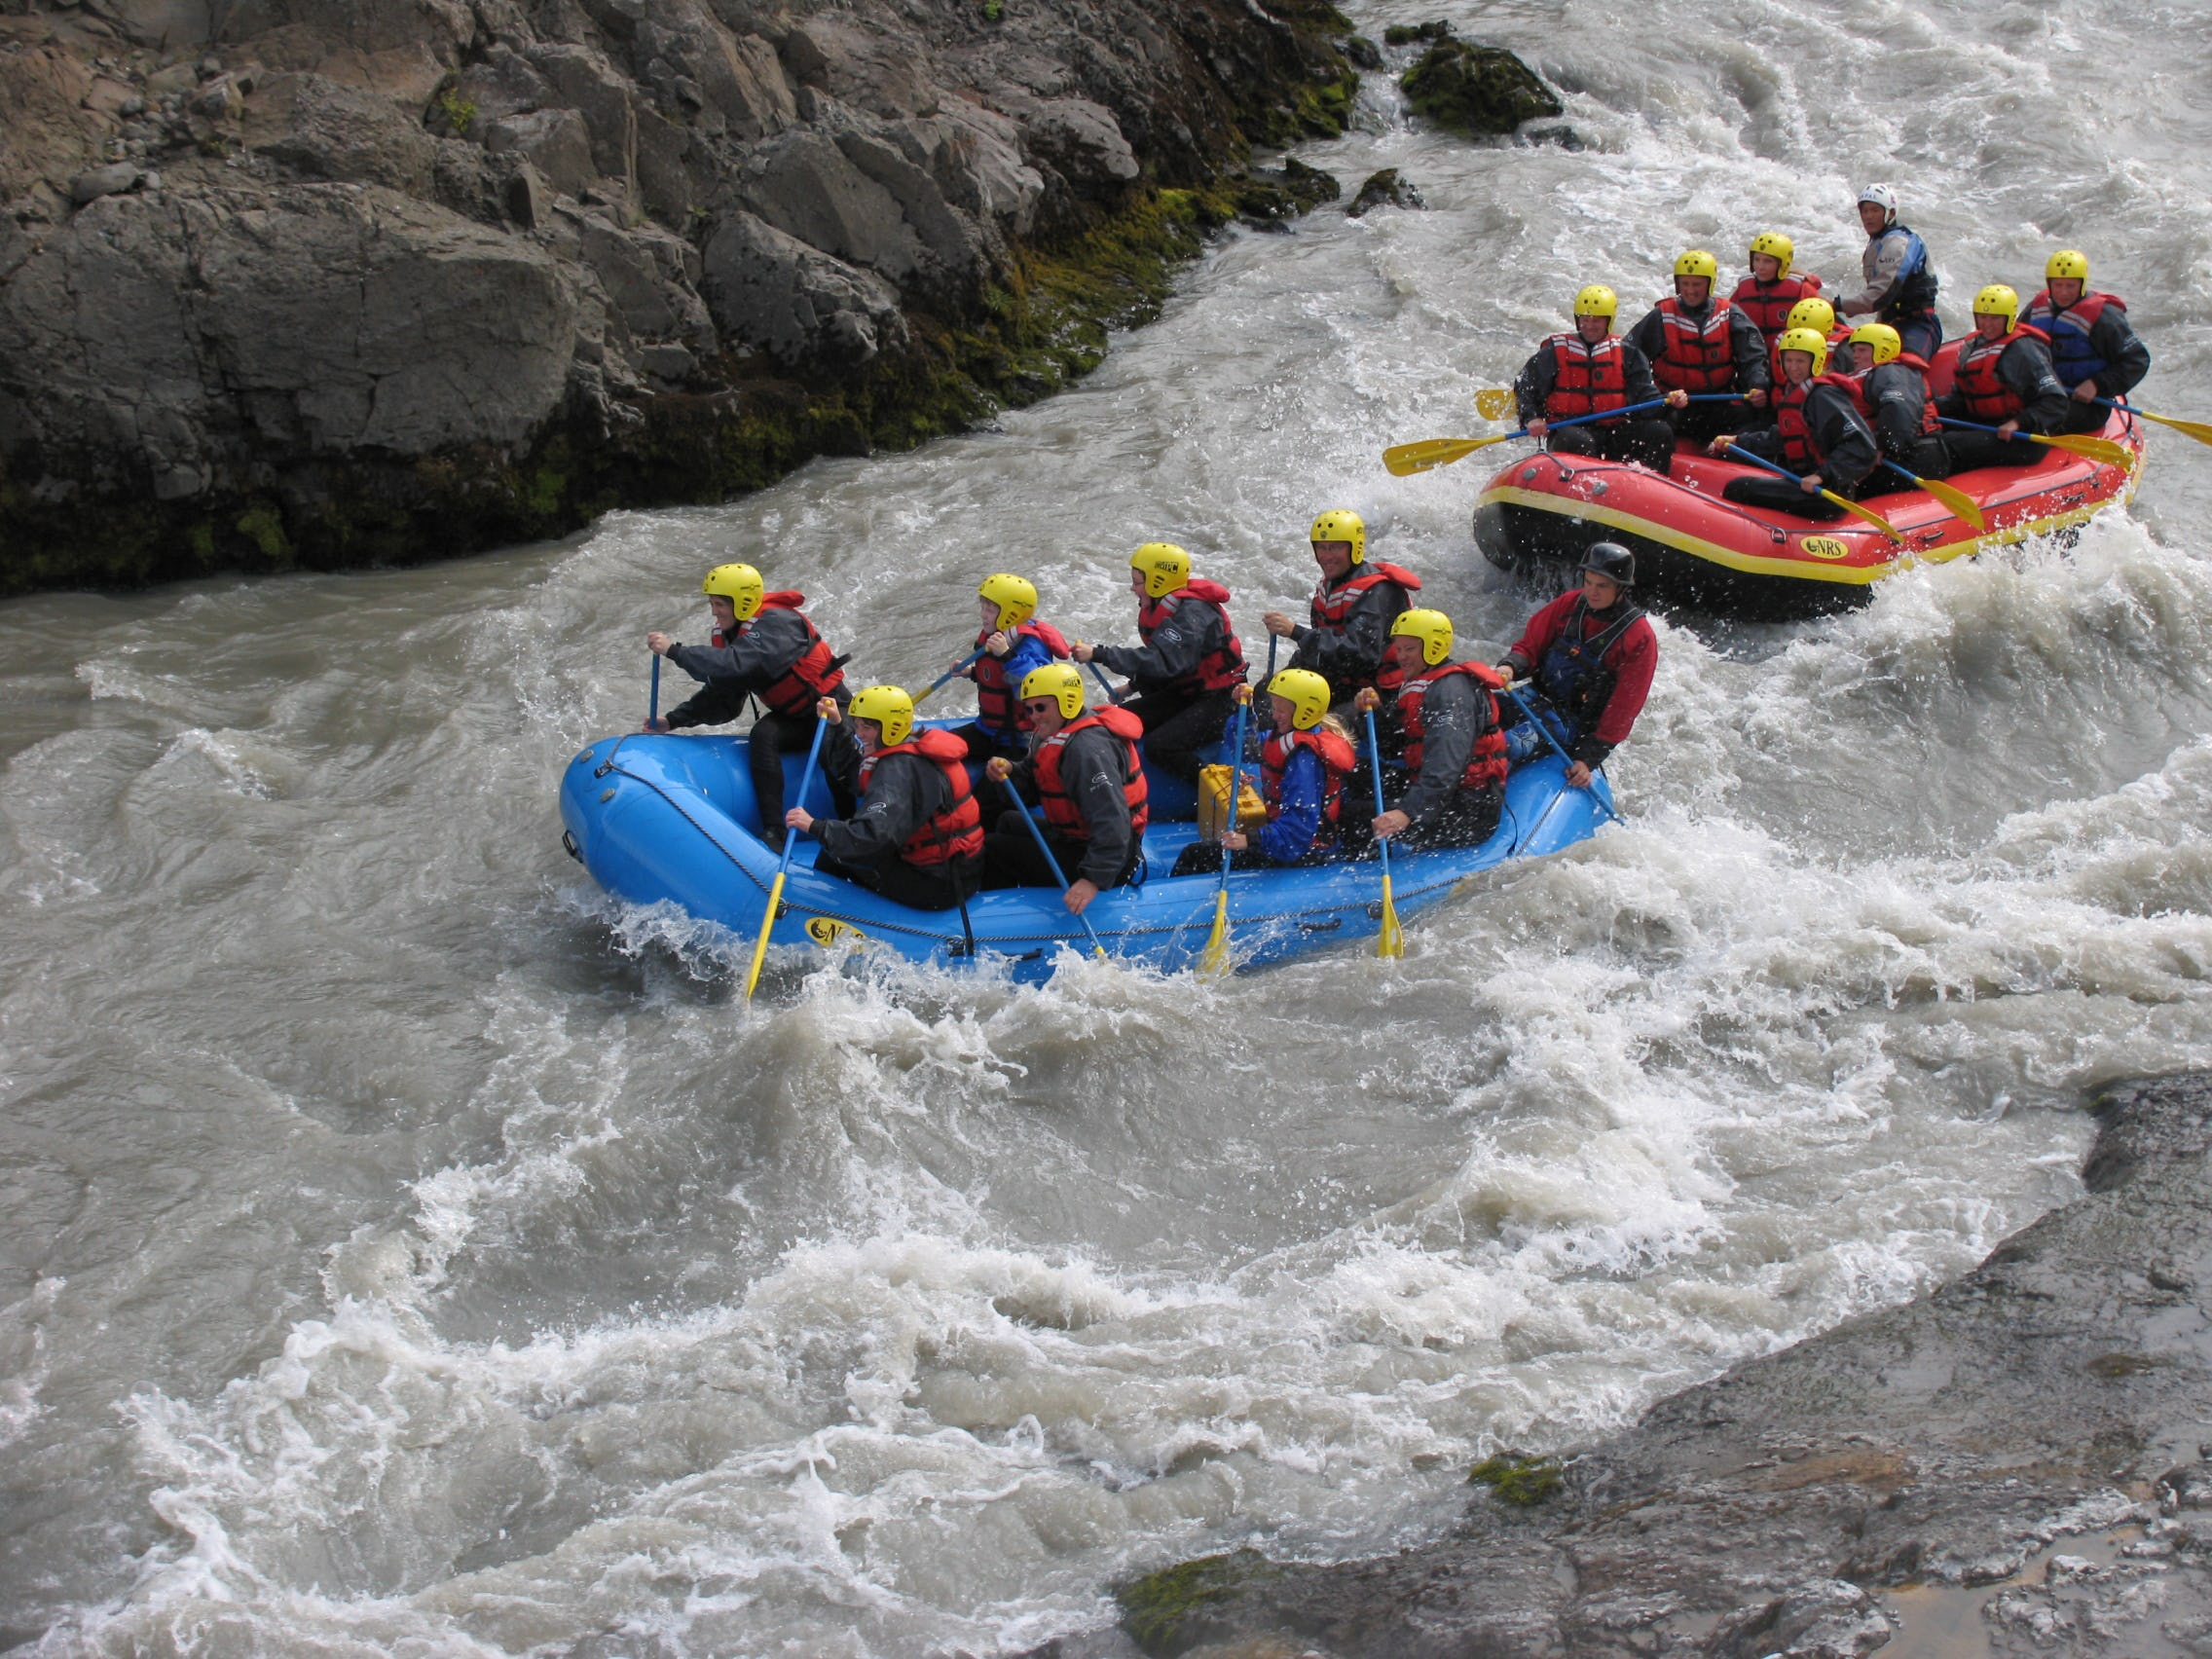 River rafters enjoying West Glacial River in North Iceland through the summer.